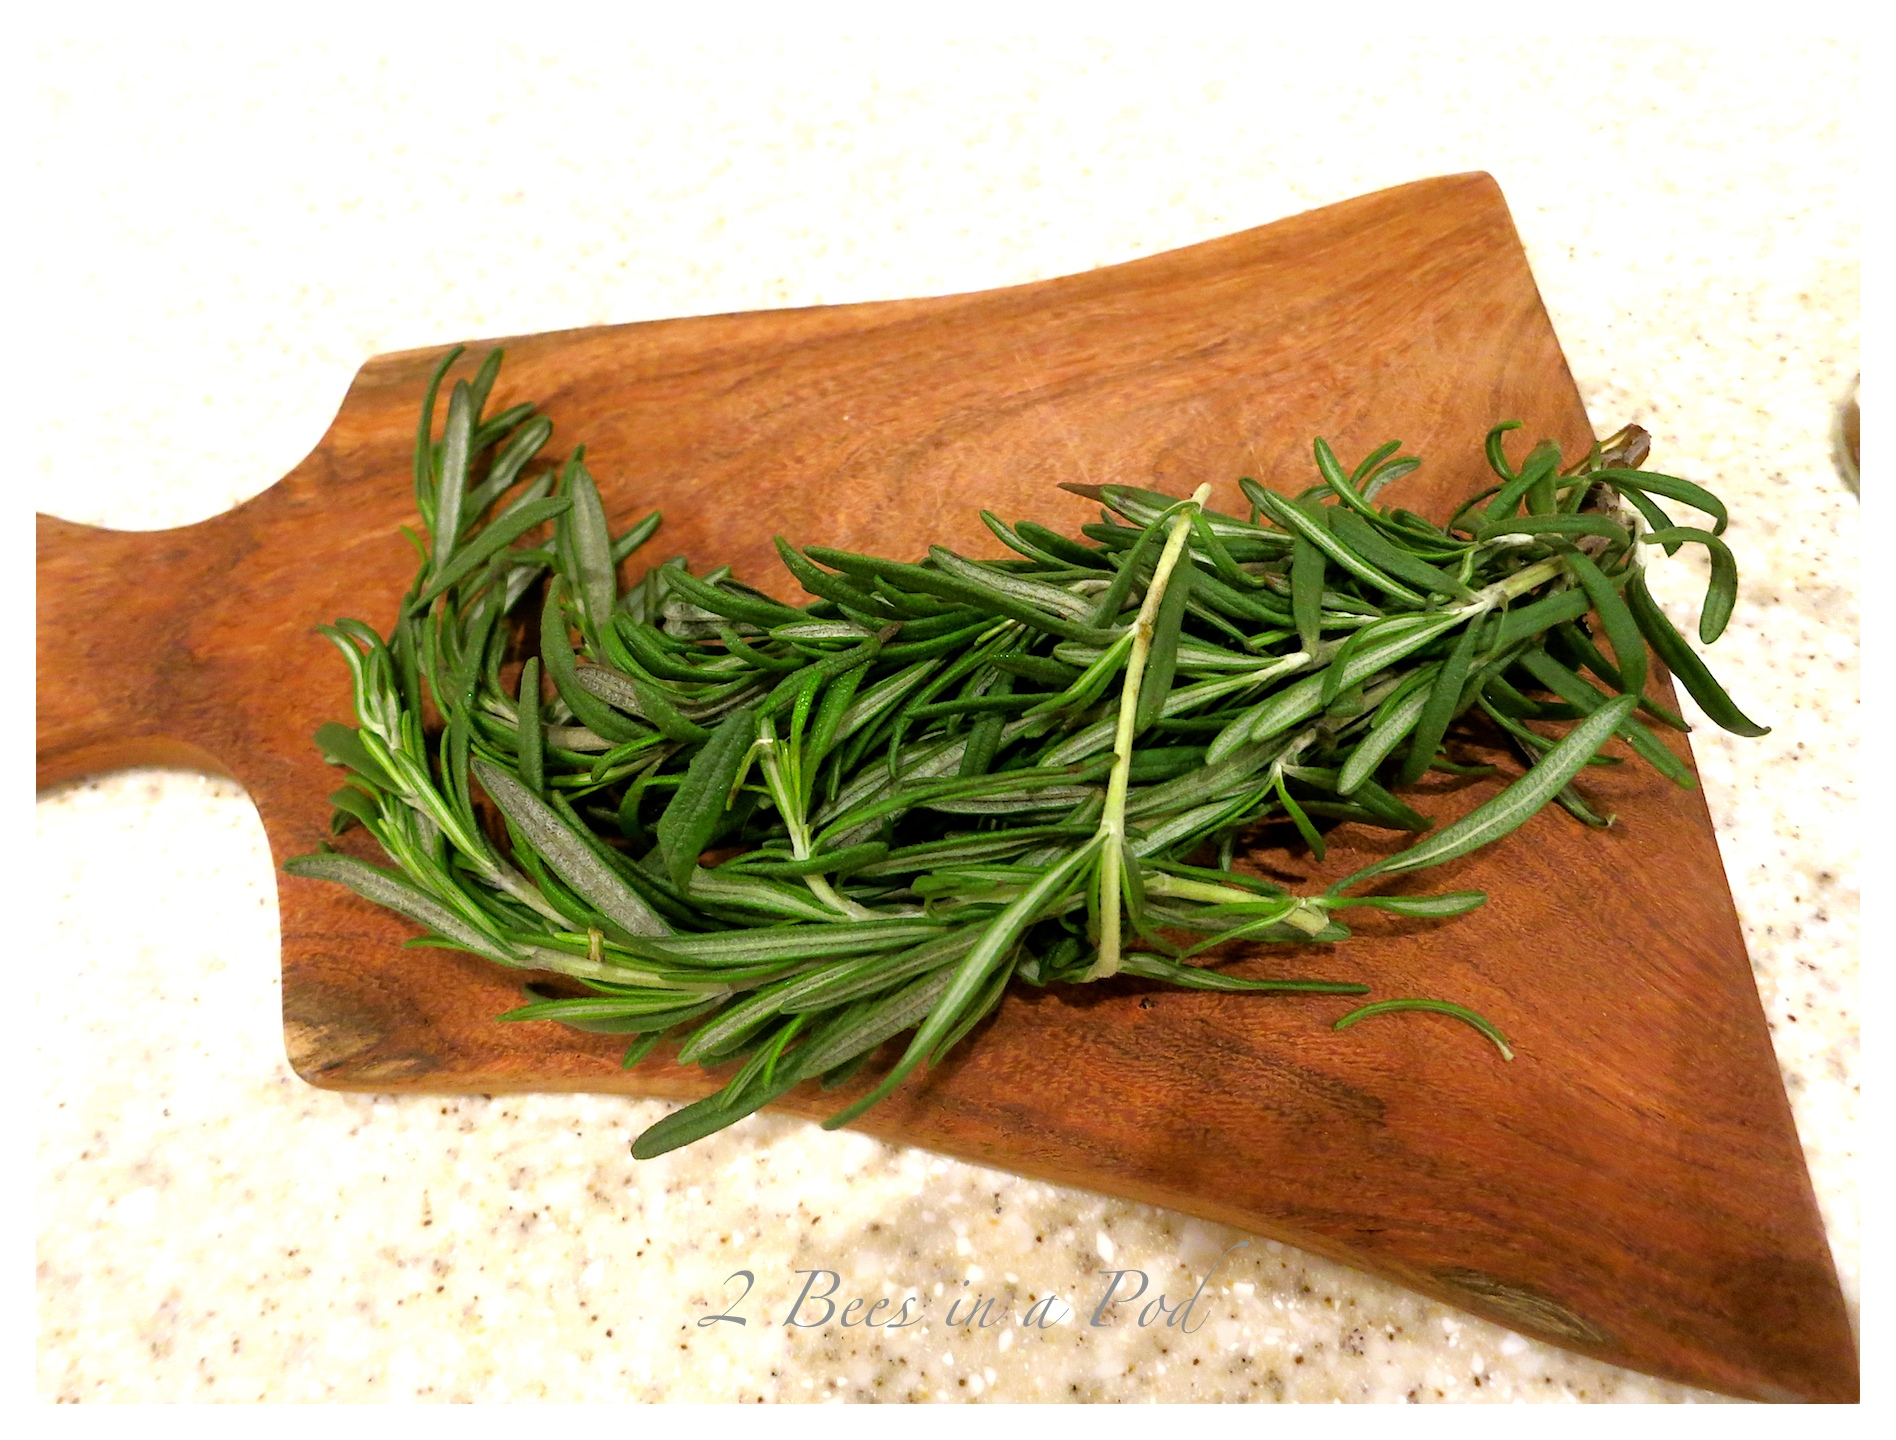 Fresh Rosemary really enhances the flavor in the Peppery Peanuts...a perfect Christmas gift.